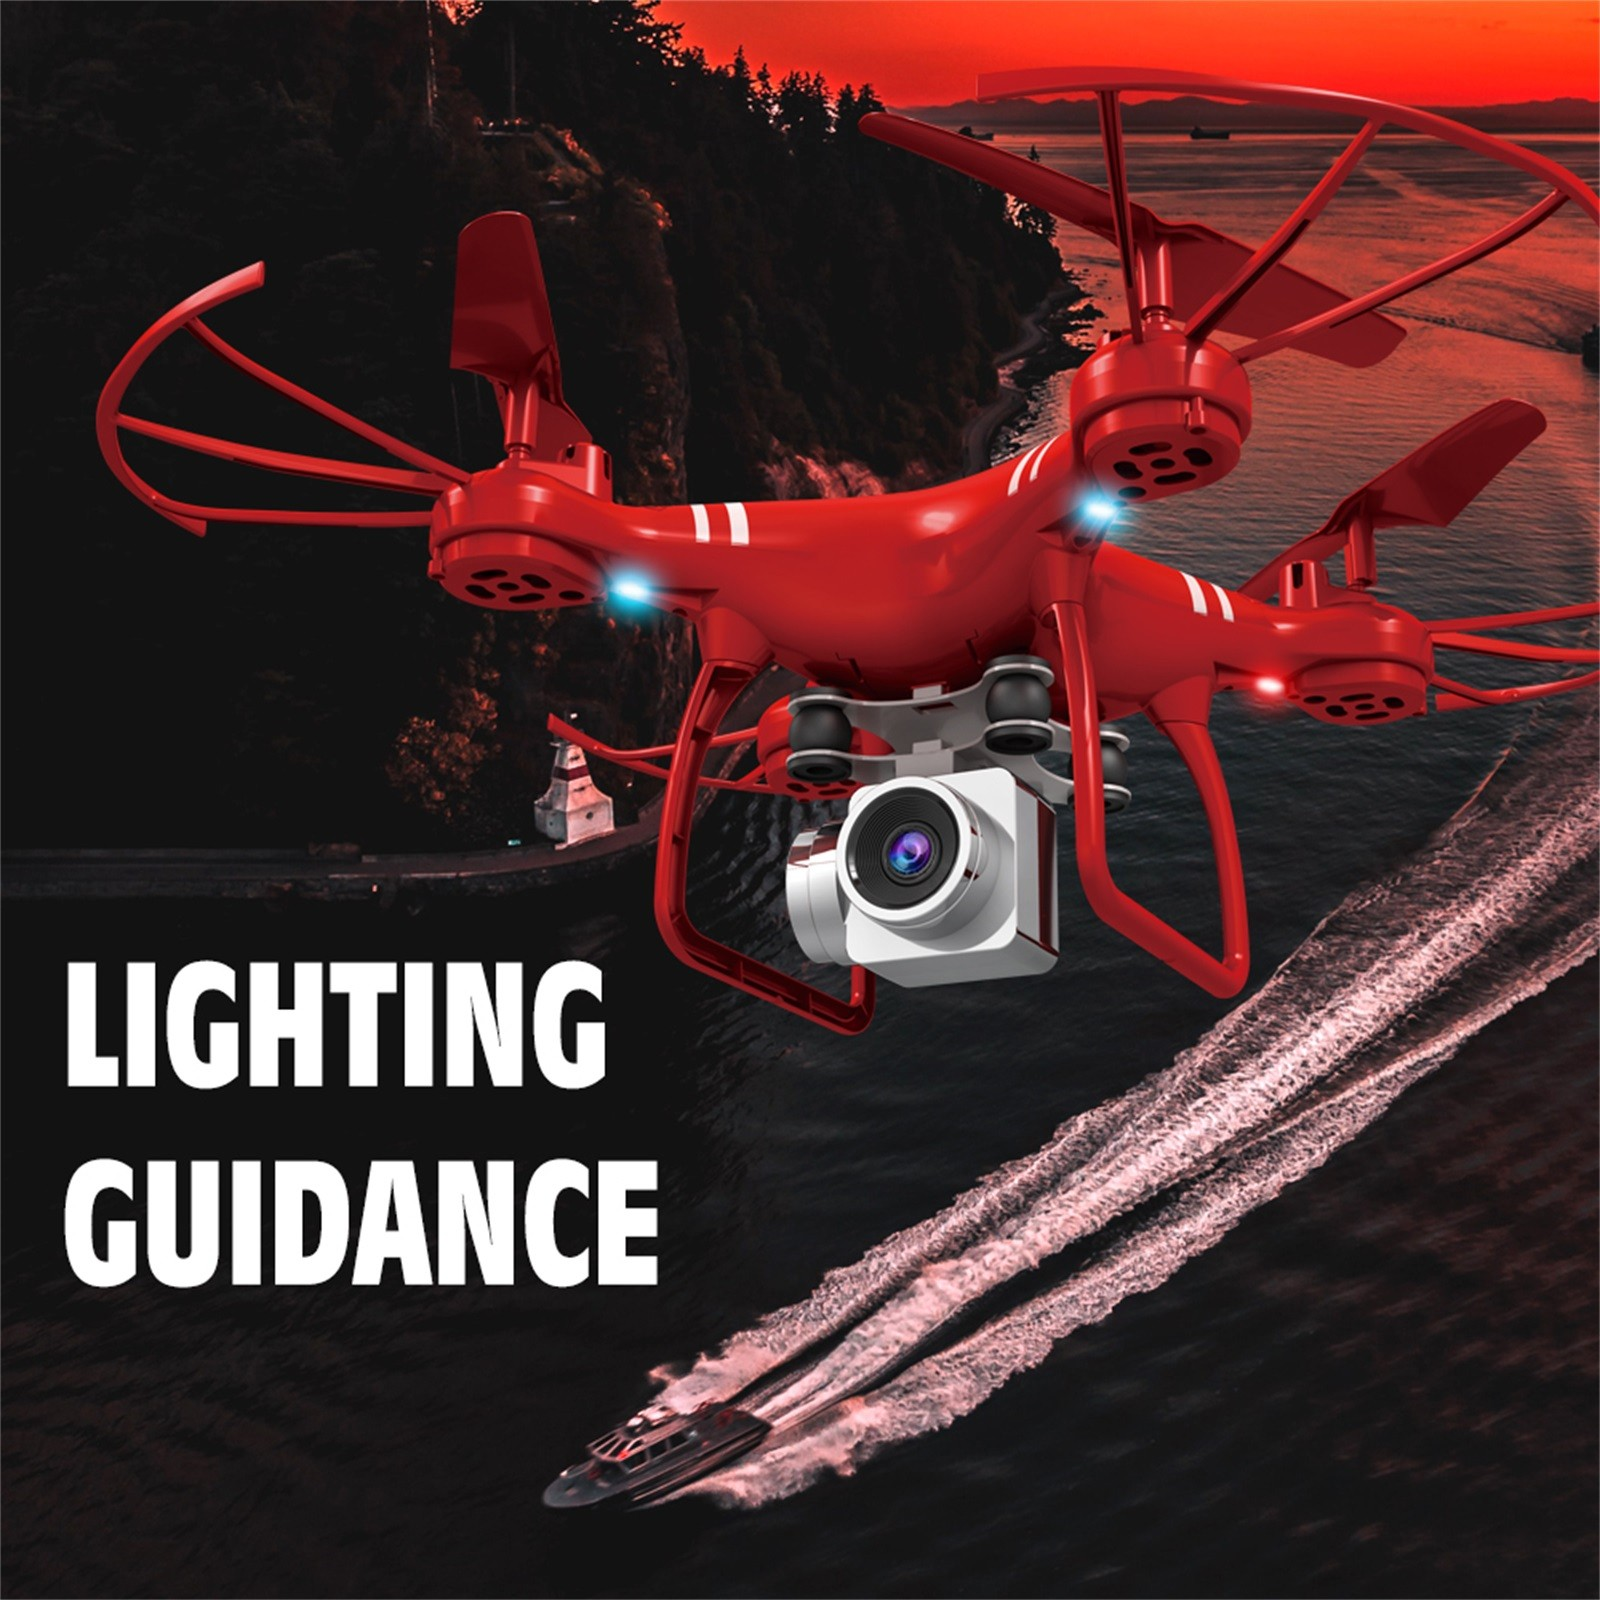 H095f563da8794b3e9b05c3330d954472H - Hjhrc Four-axis Aerial Photography Aircraft Drone With Camera Hd 4k Wifi Fpv Foldable Drone Height Holding Headless Quadcopter